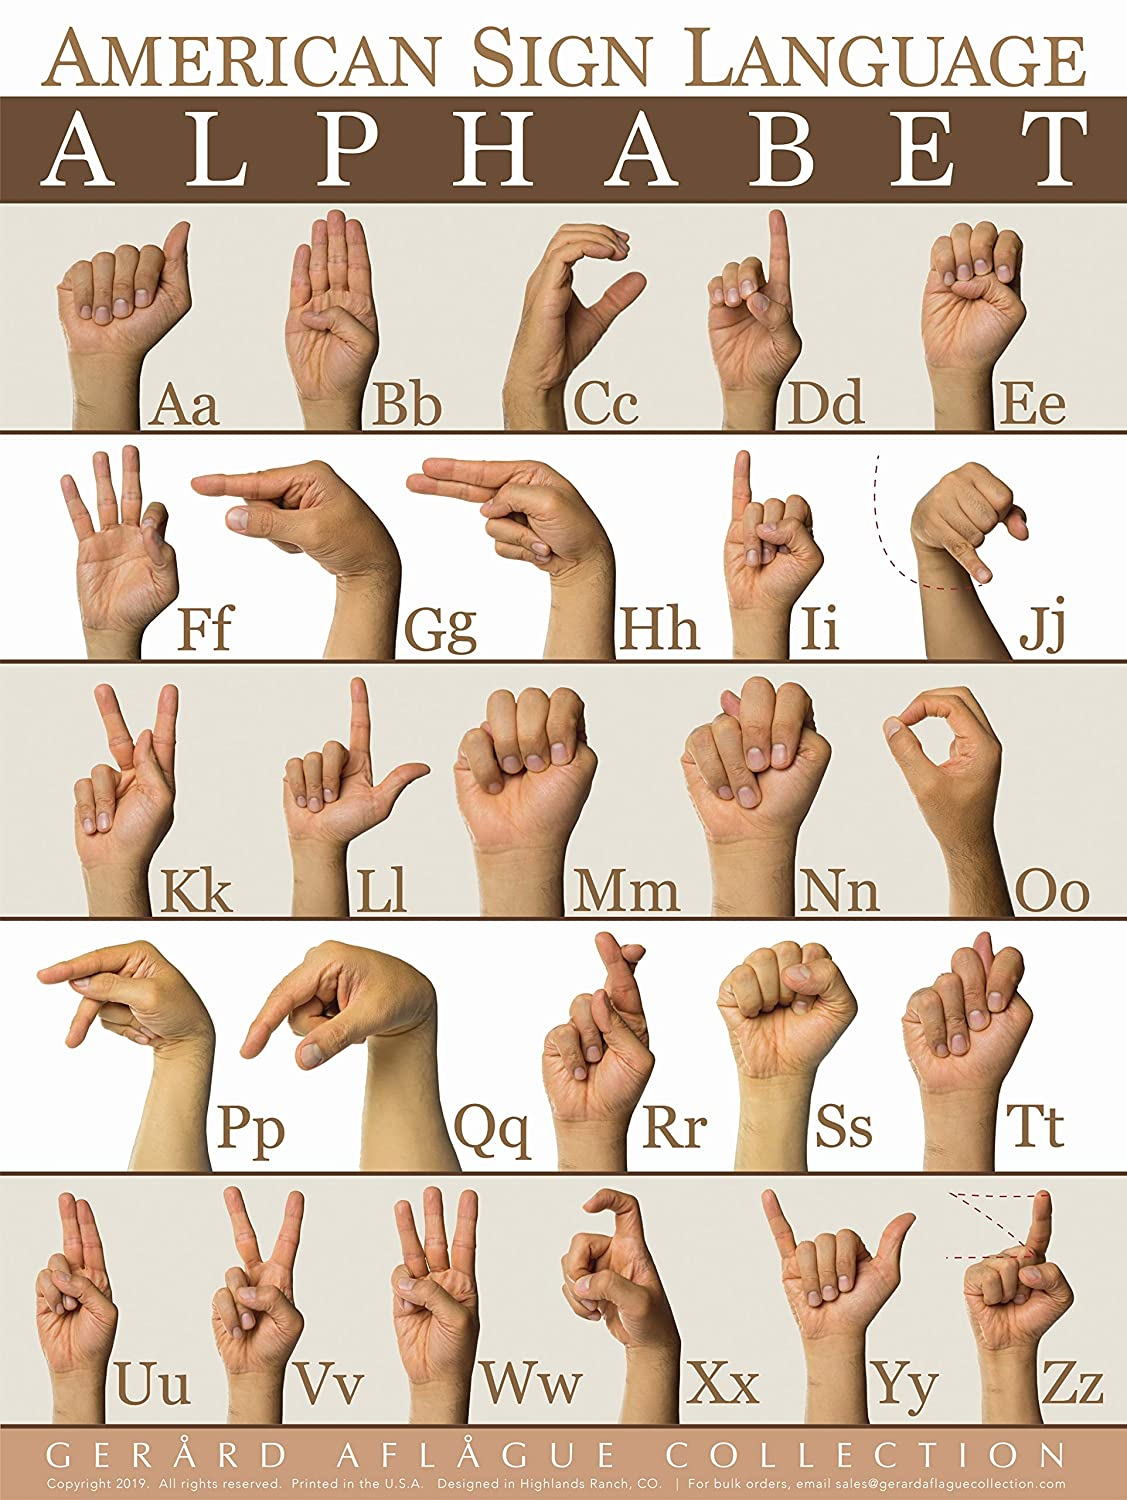 Image result for American sign language